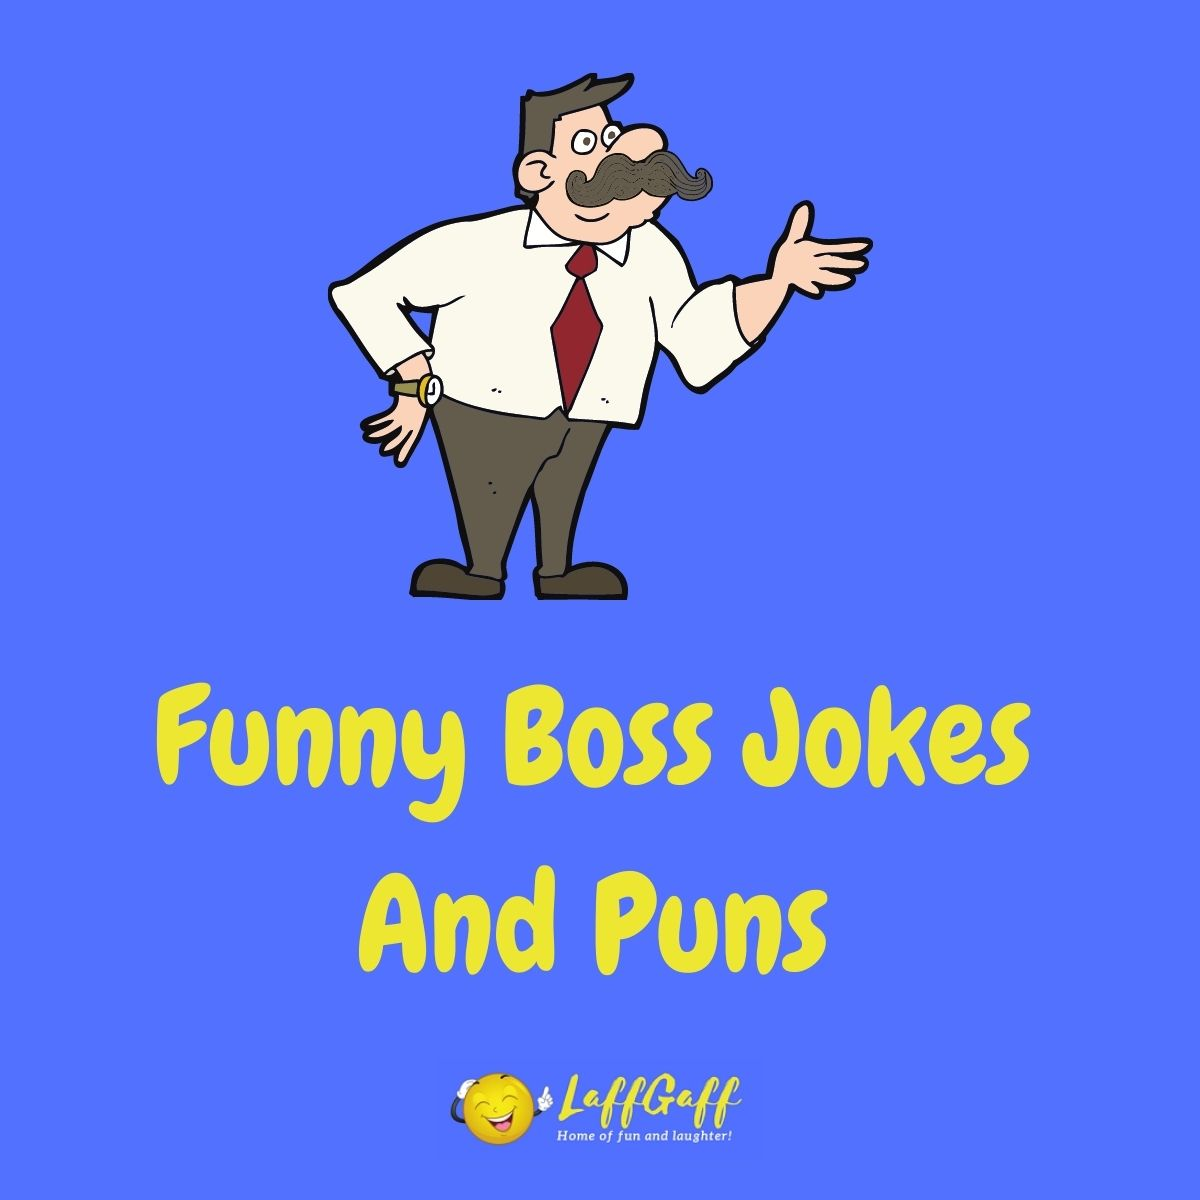 Featured image for a page of funny boss jokes and puns.